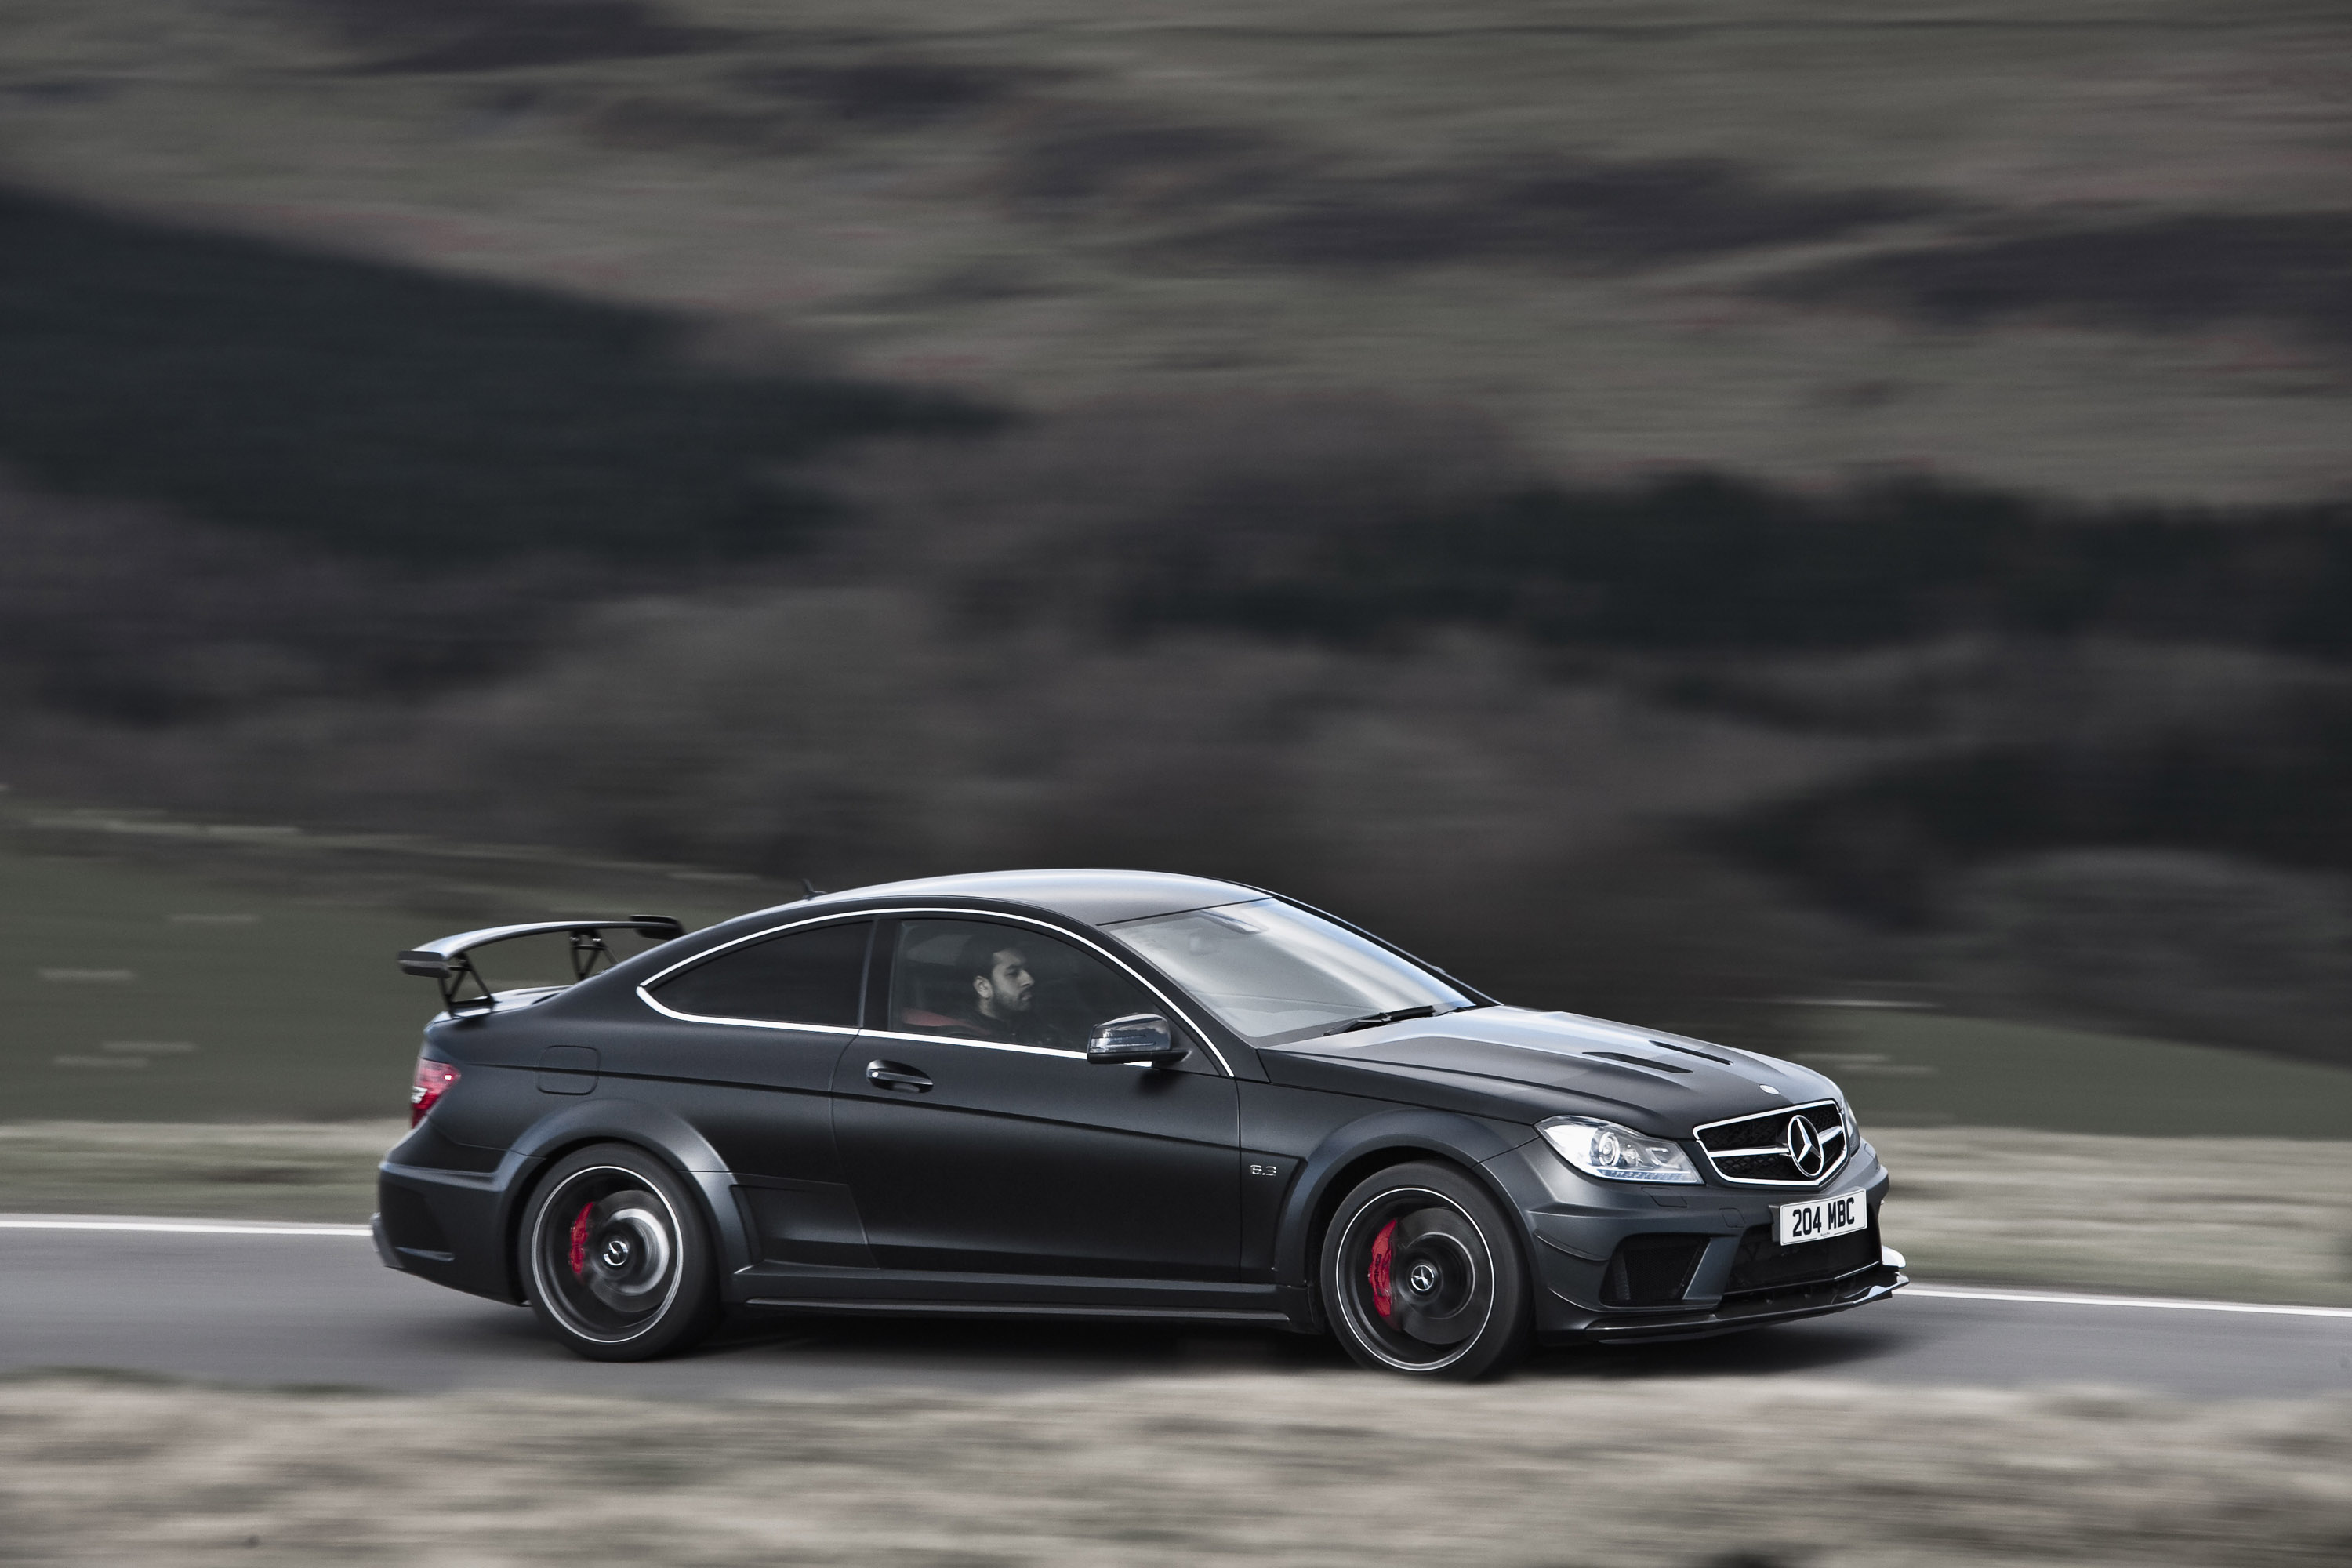 2012 Mercedes Benz C63 Amg Coupe Black Series Hd